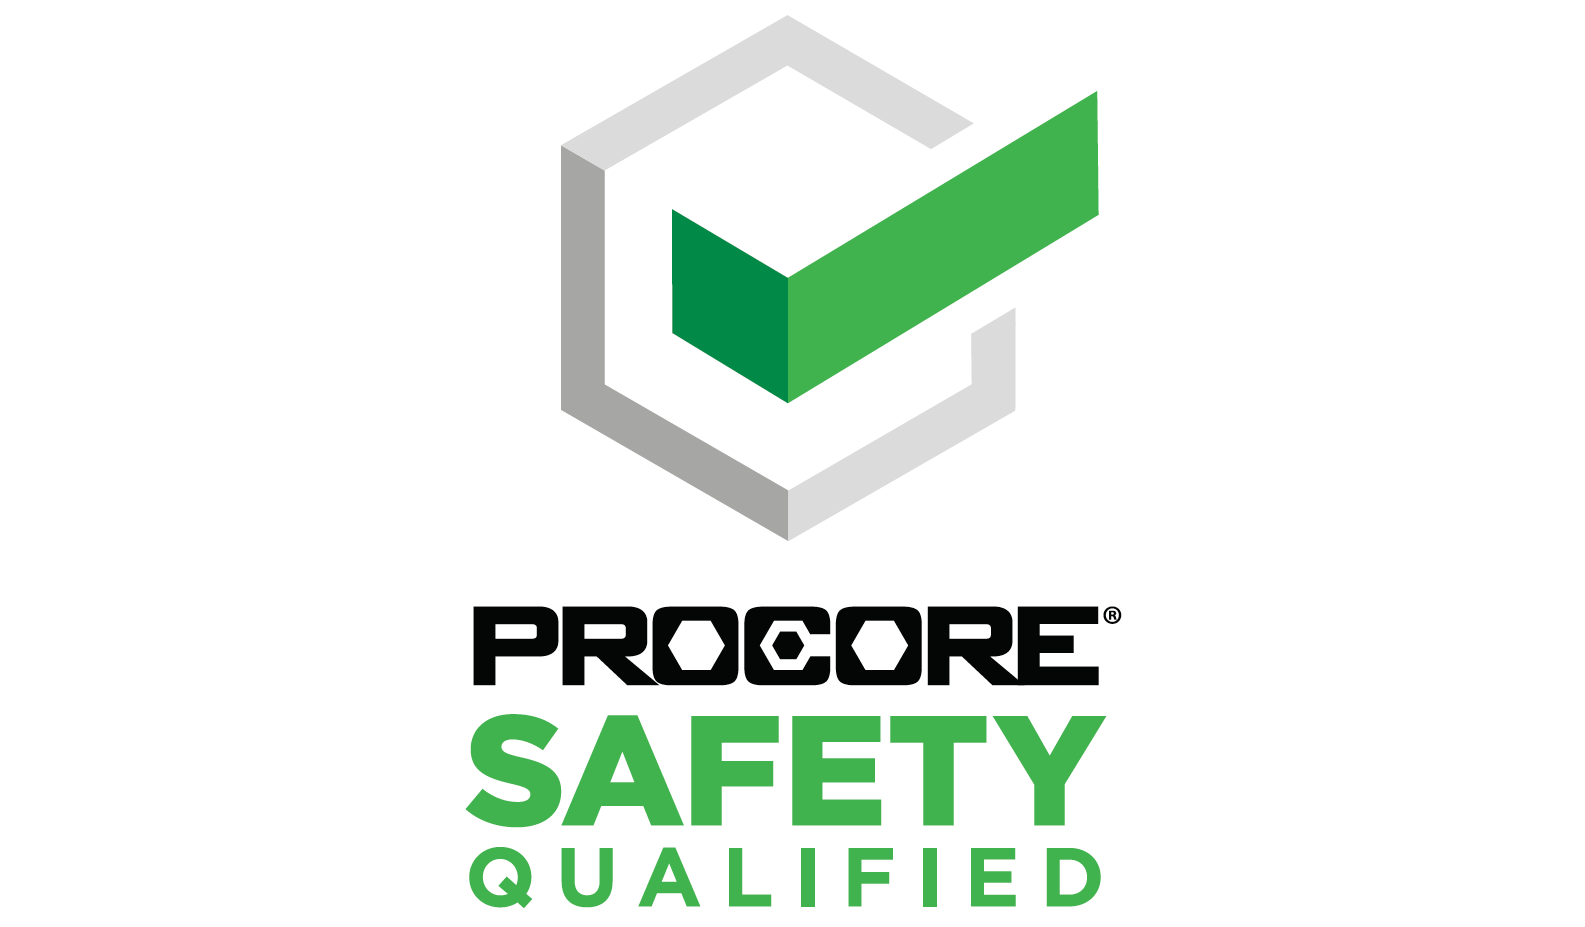 Procore Safety Qualified